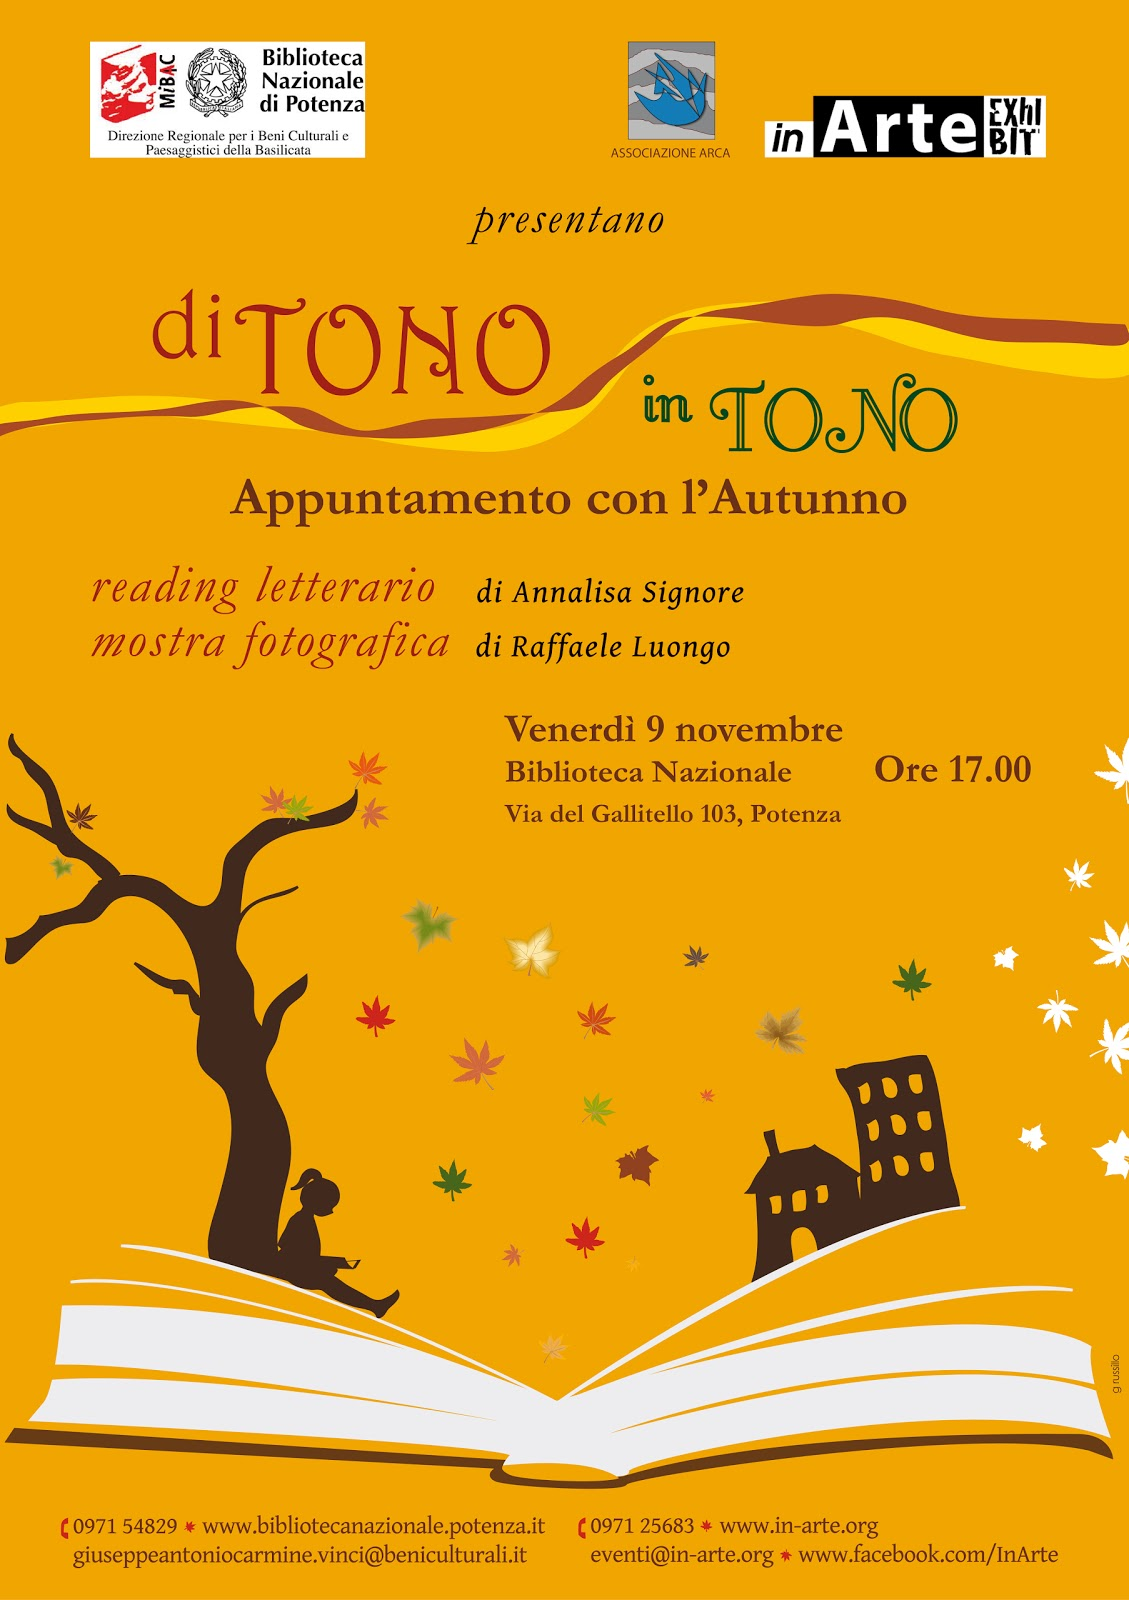 http://inarte-blog.blogspot.it/2012/10/di-tono-in-tono-appuntamento-con.html